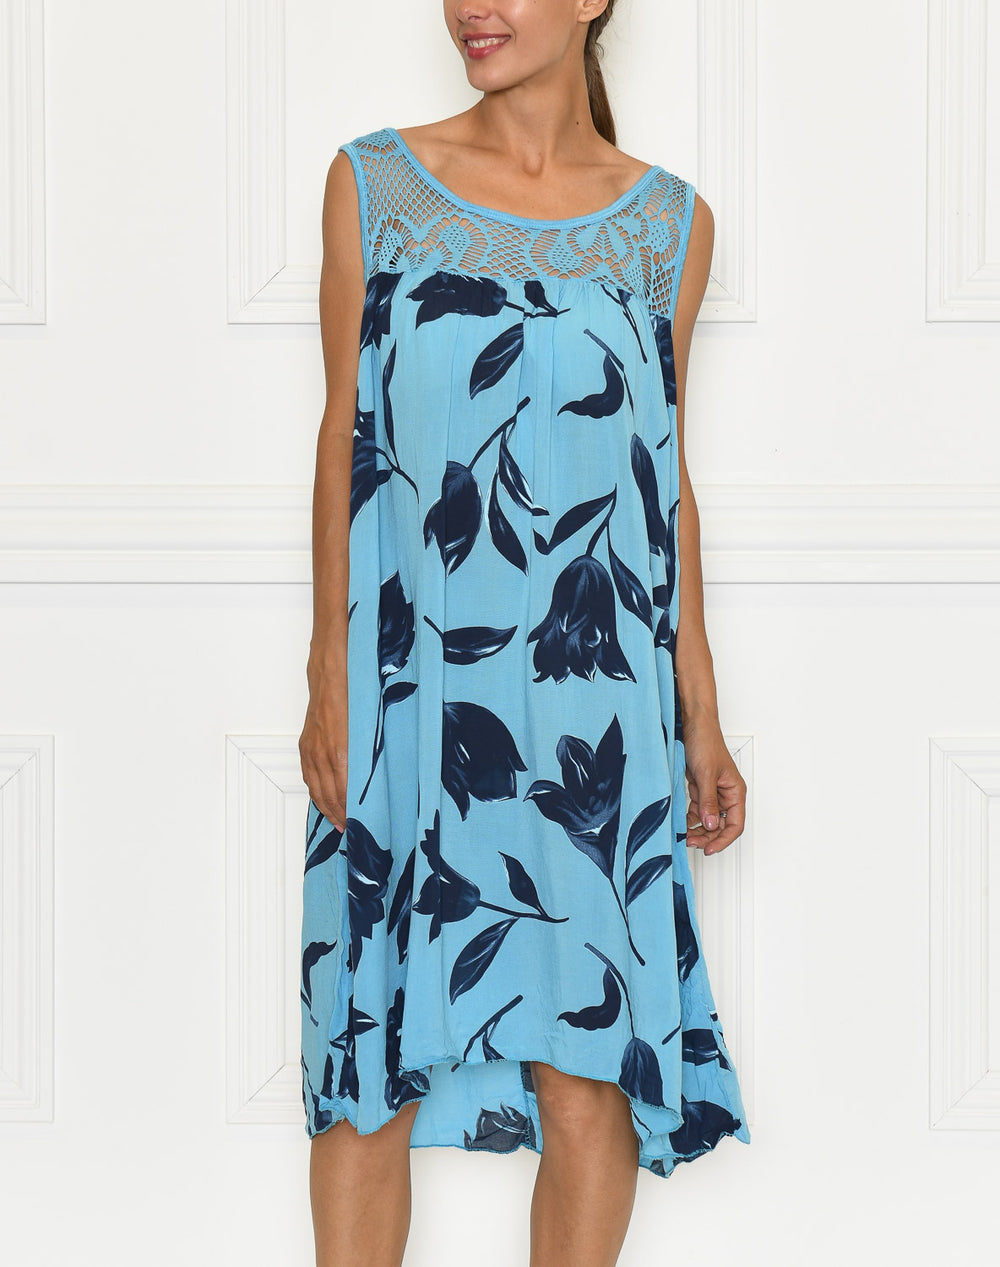 Luna dress turquoise blue